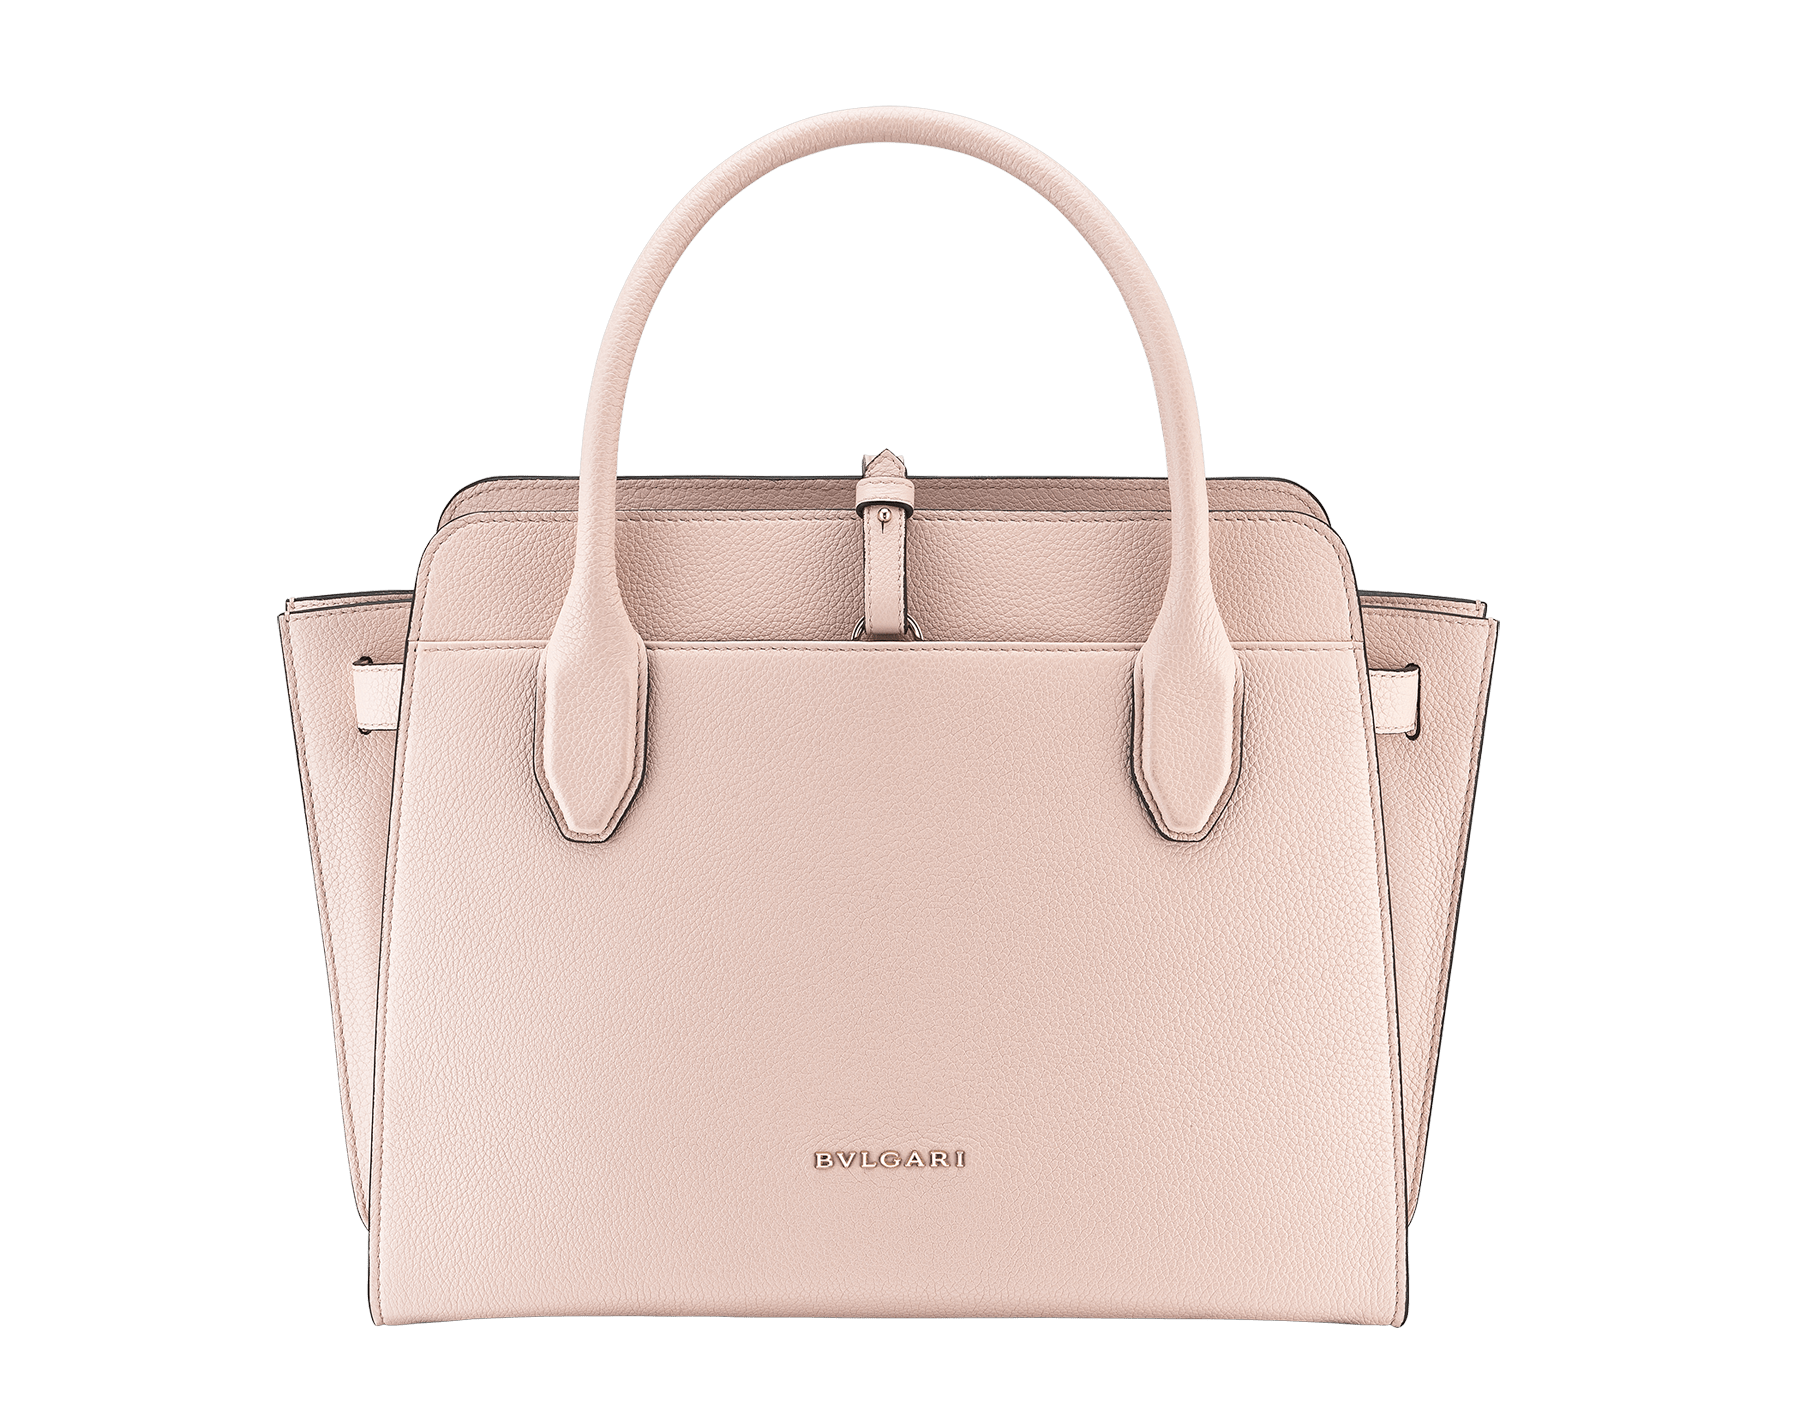 BVLGARI BVLGARI Alba tote bag in crystal rose grain calf leather, with zip closure. Iconic double logo pendant in brass light gold plated metal with black enamel on the front side, leather on the back side and Tubogas motif 834-CL image 3